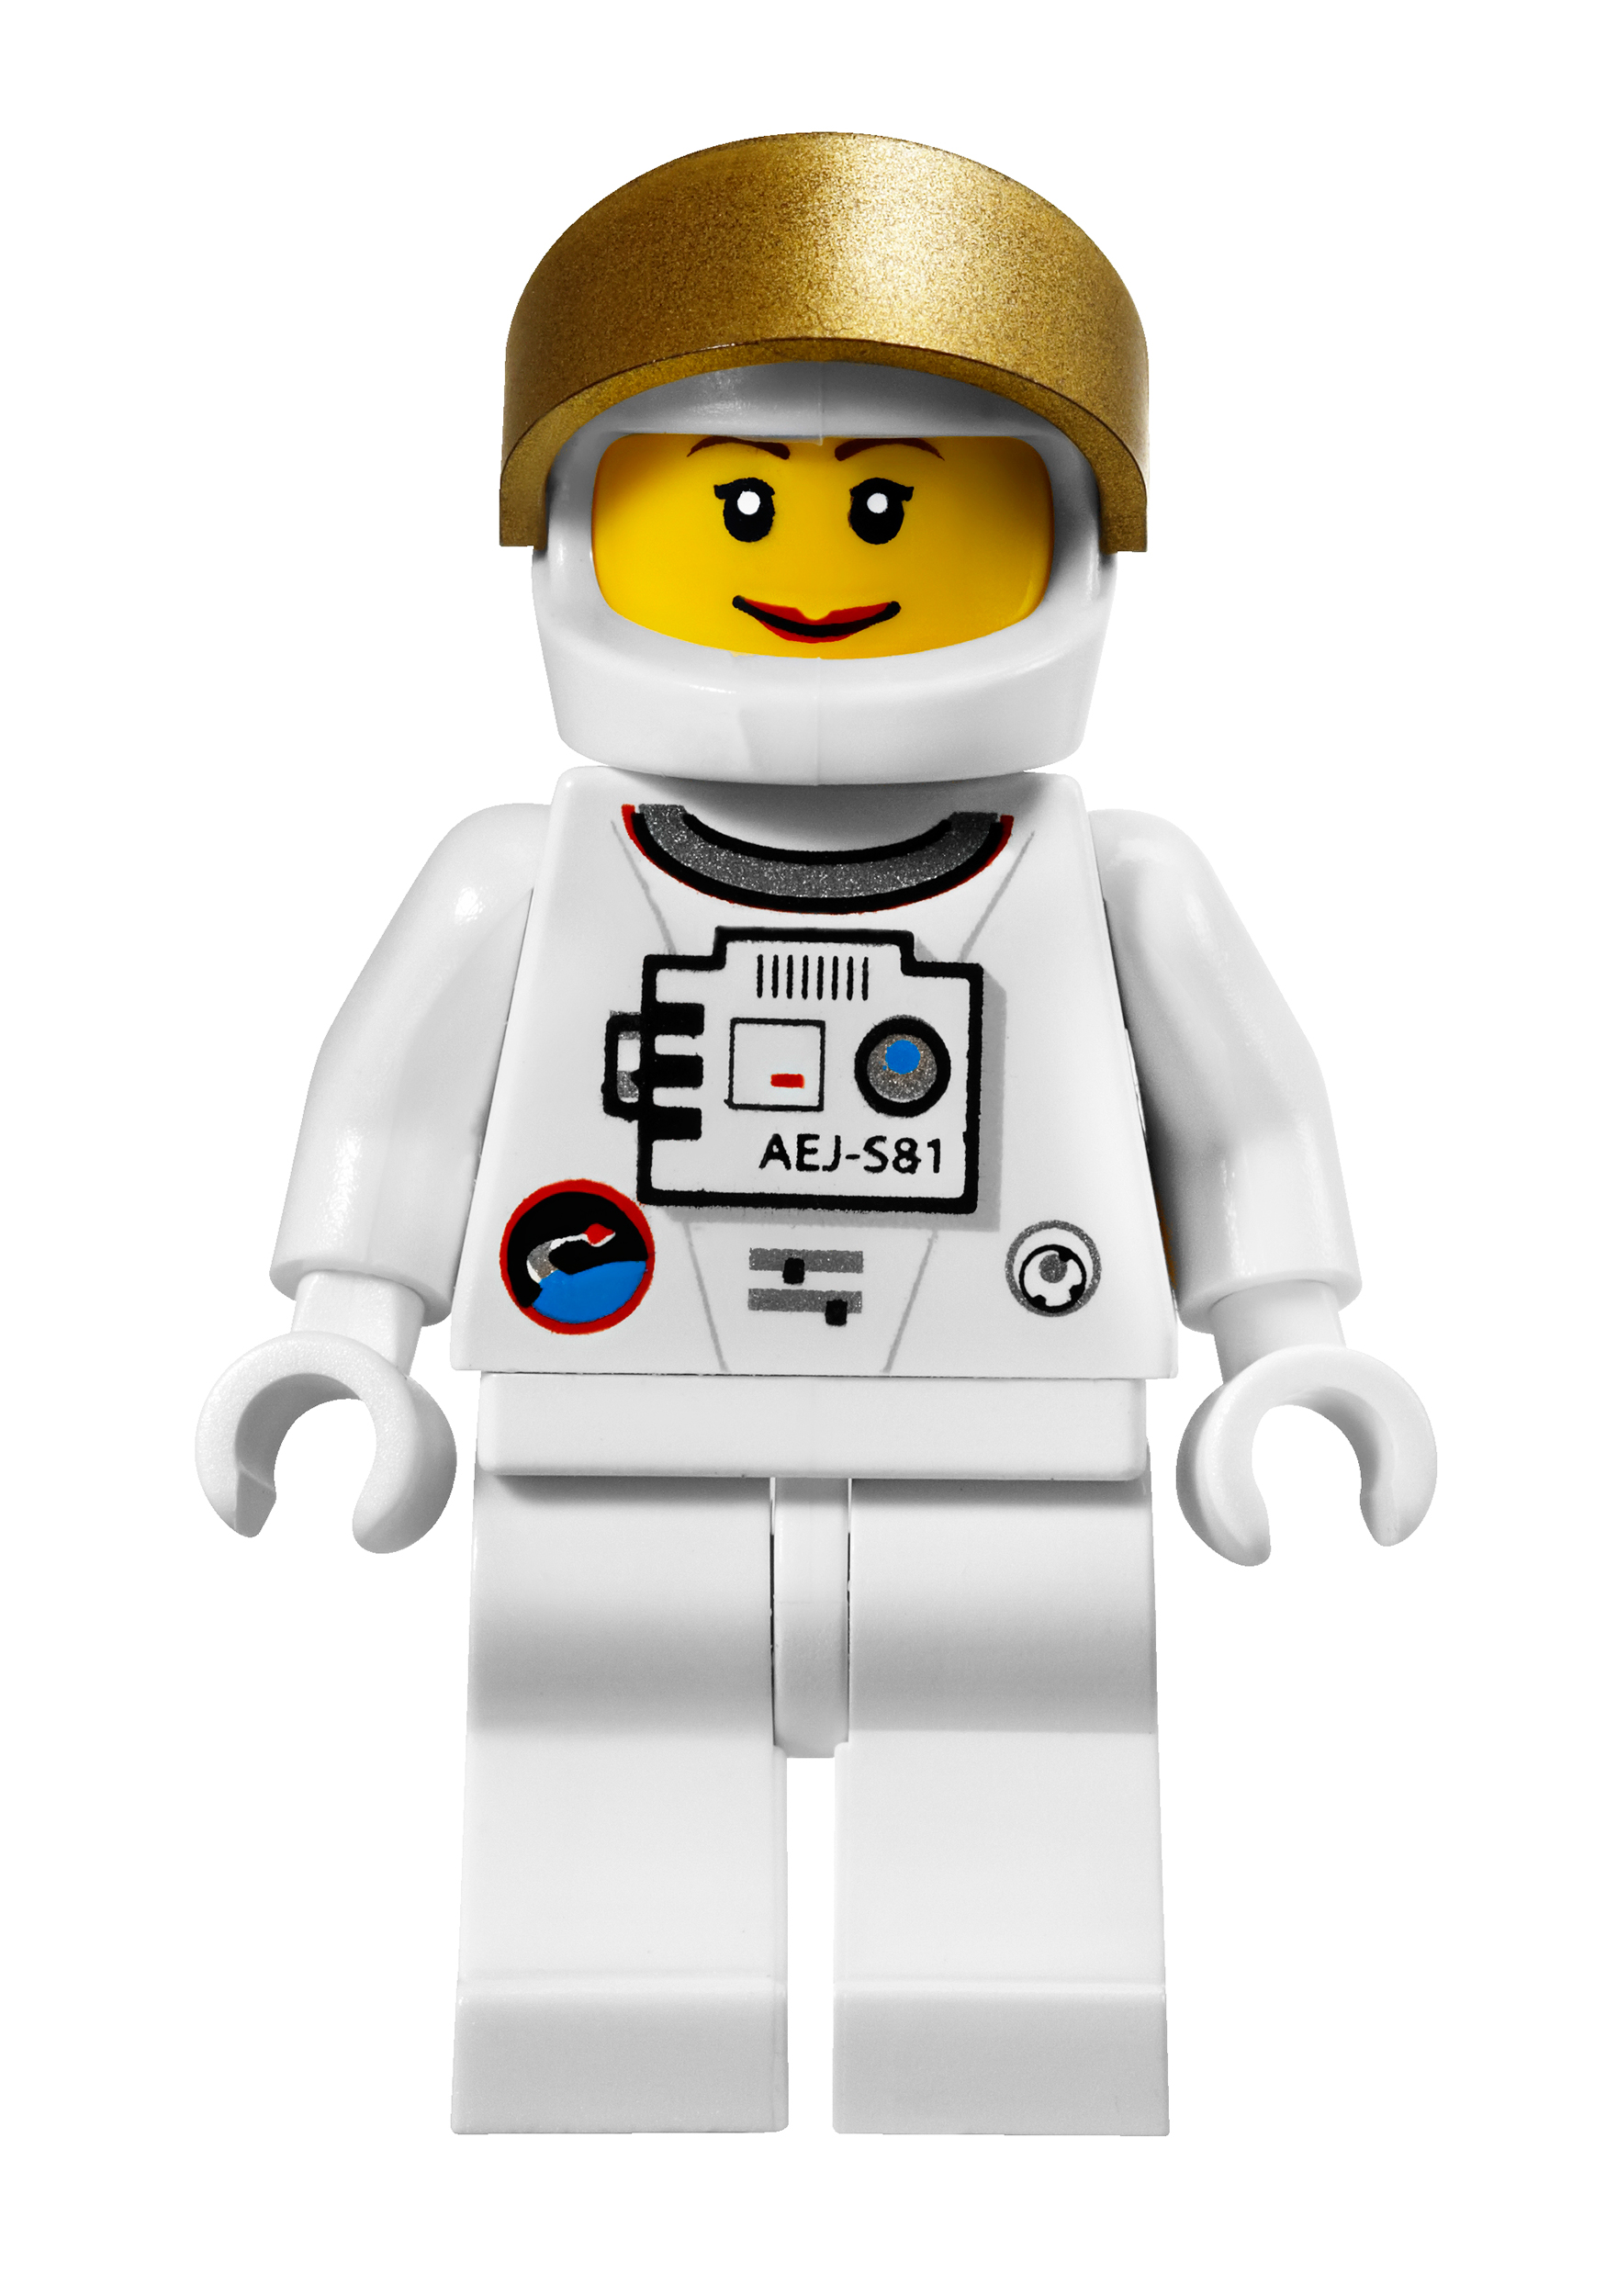 o_10213_minifigure_2_hr.jpg